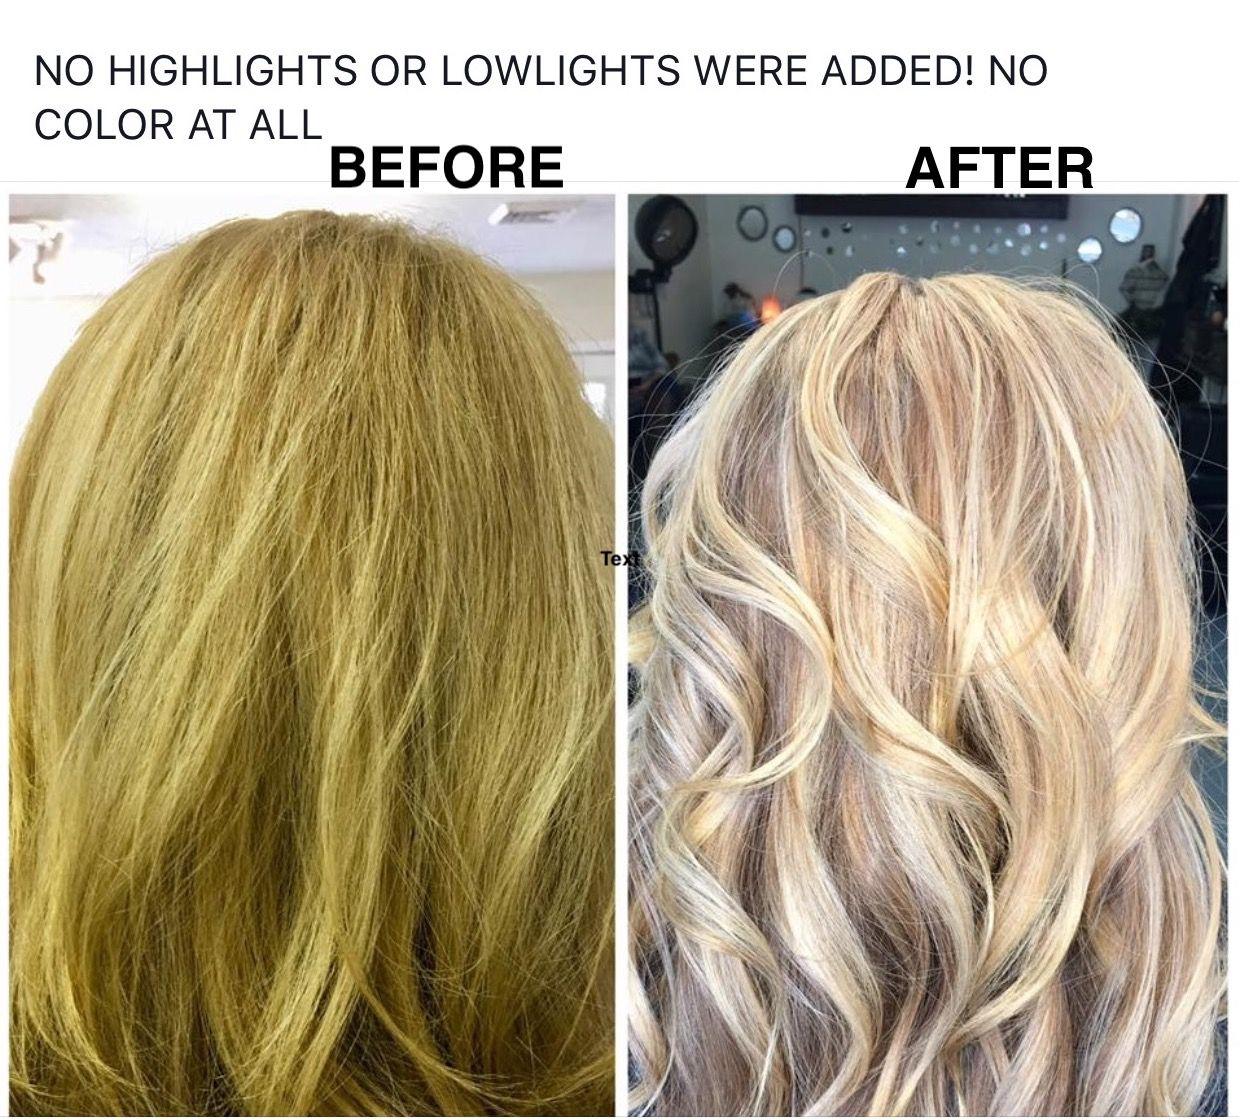 11bcd7701180bb115826294cbb0234b1 - How To Get Rid Of Brassy Tones In Blonde Hair